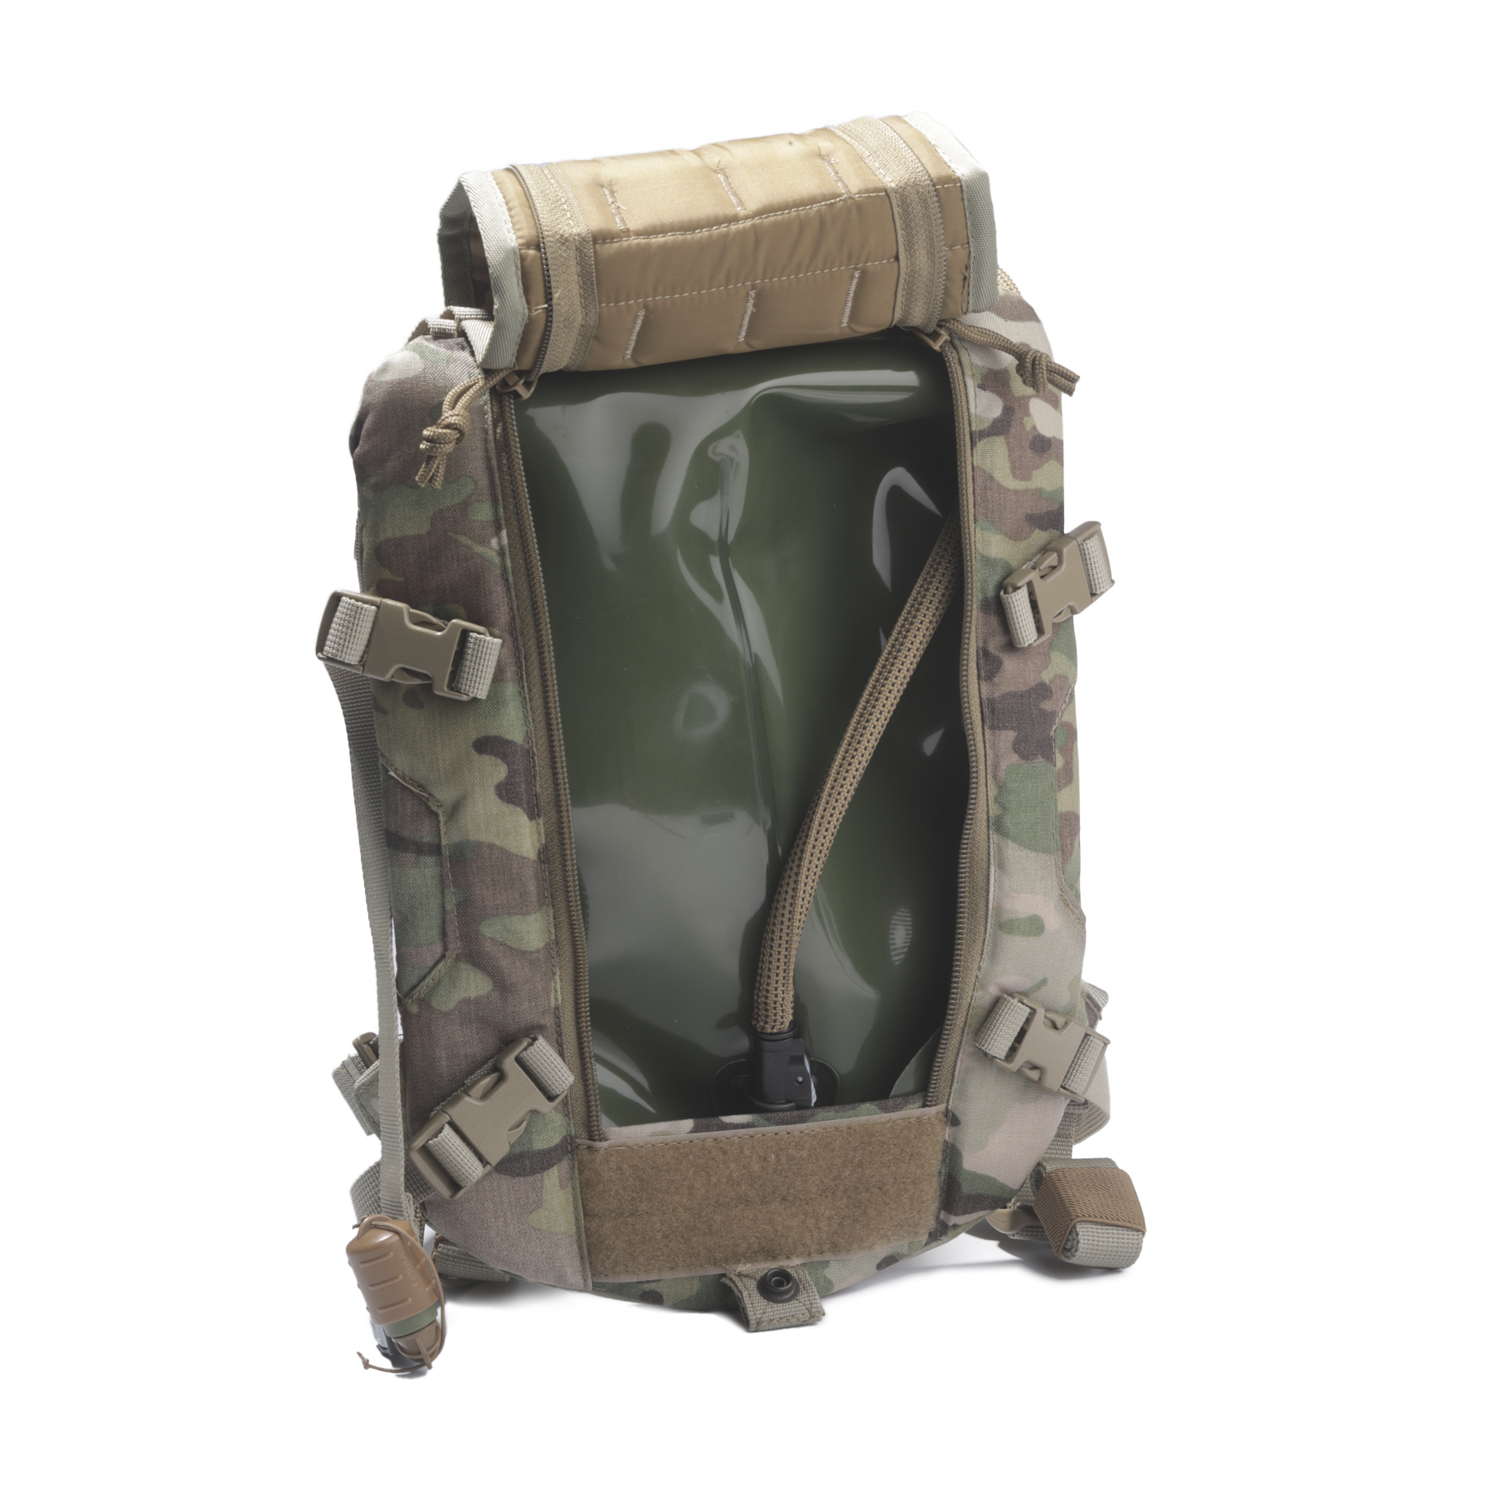 WITH 3L Bladder US Military Carrier Hydration System Backpack Molle II Storm